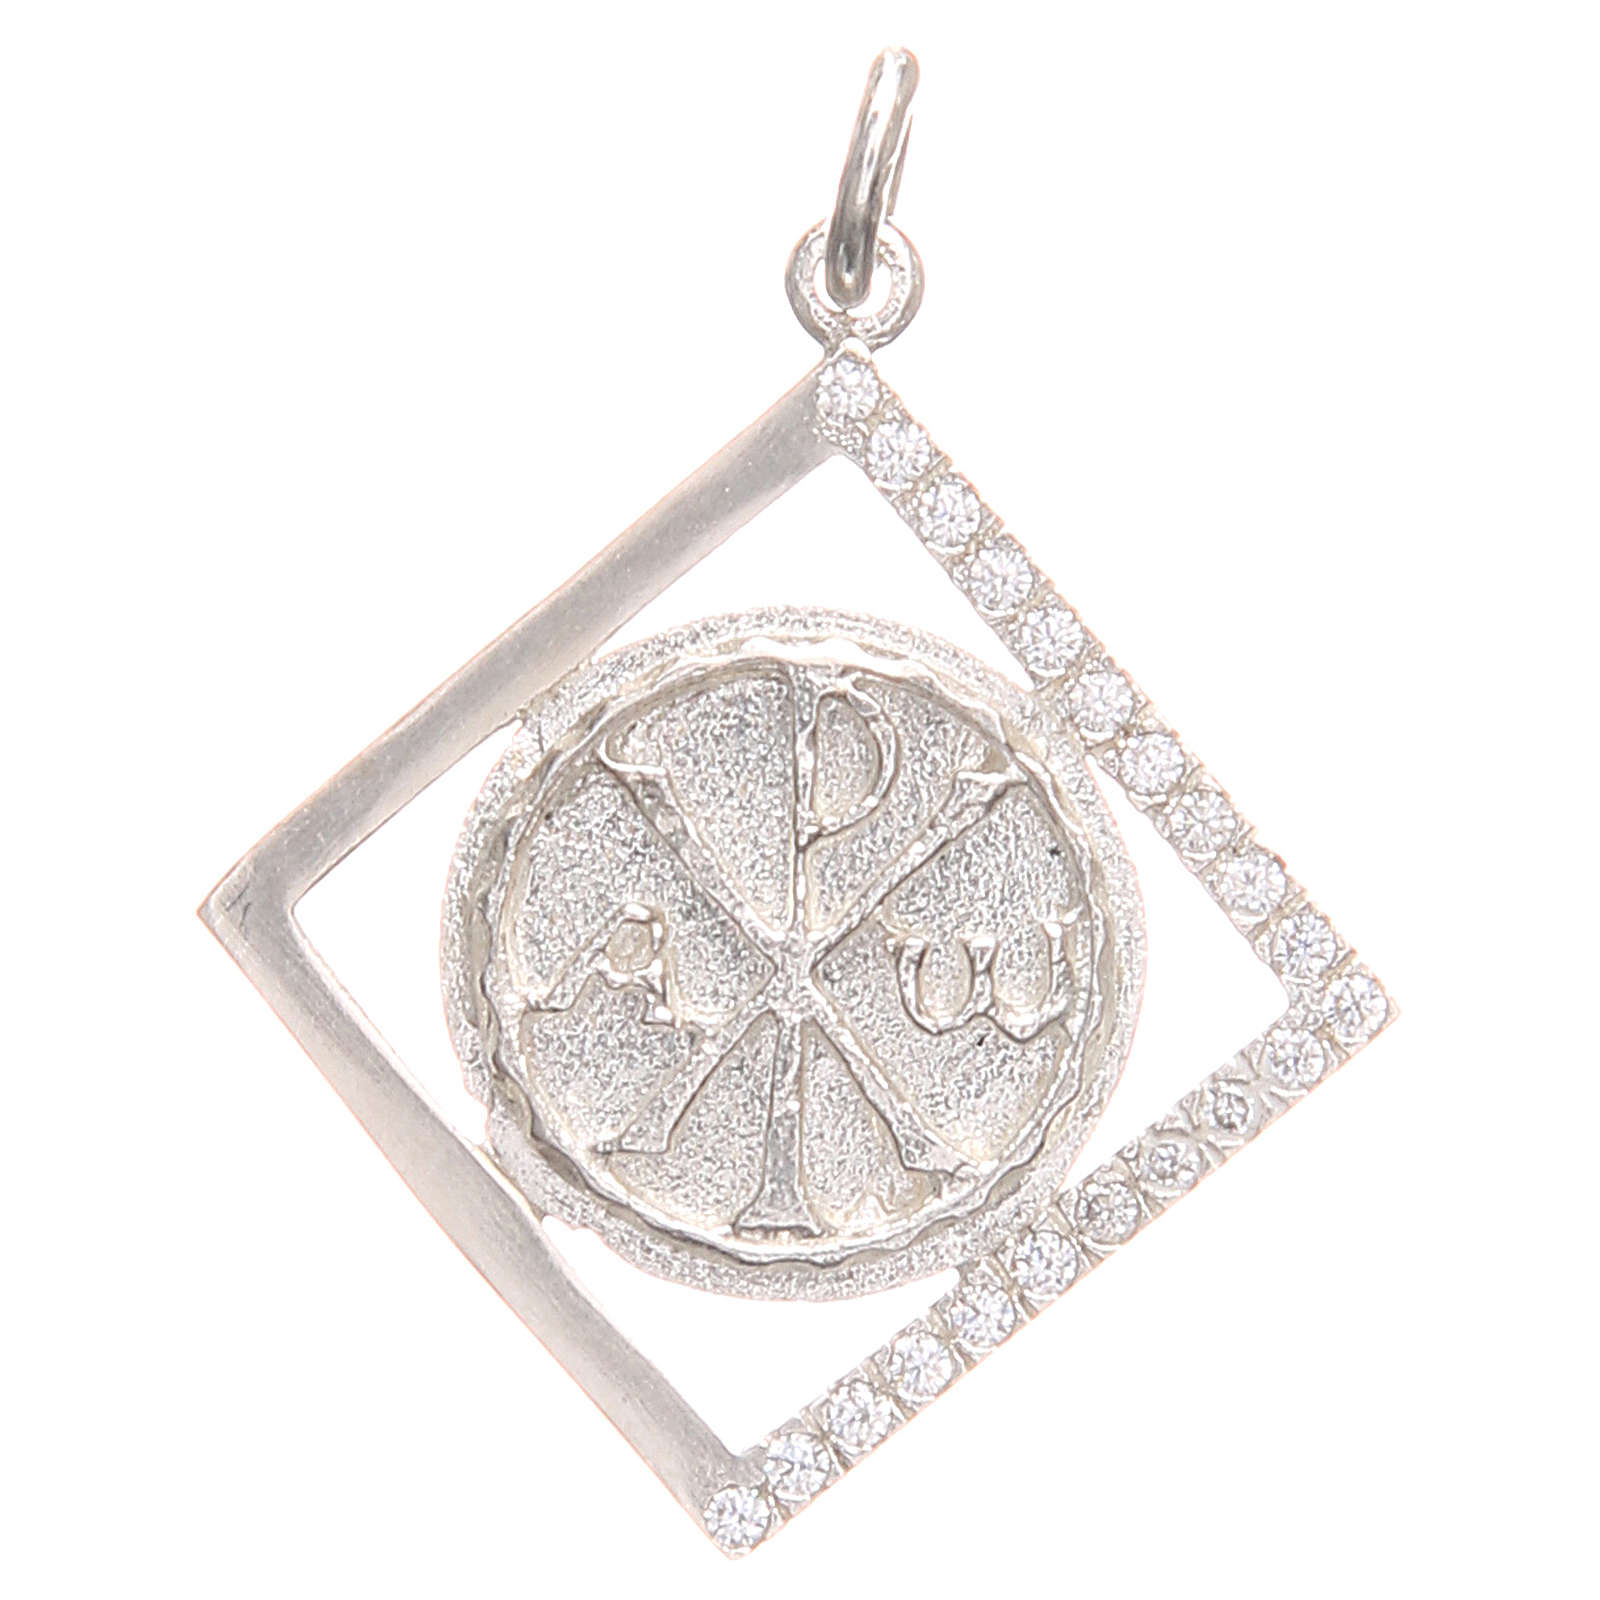 Pendant charm in 800 silver with Pax symbol 1.7x1.7cm 4